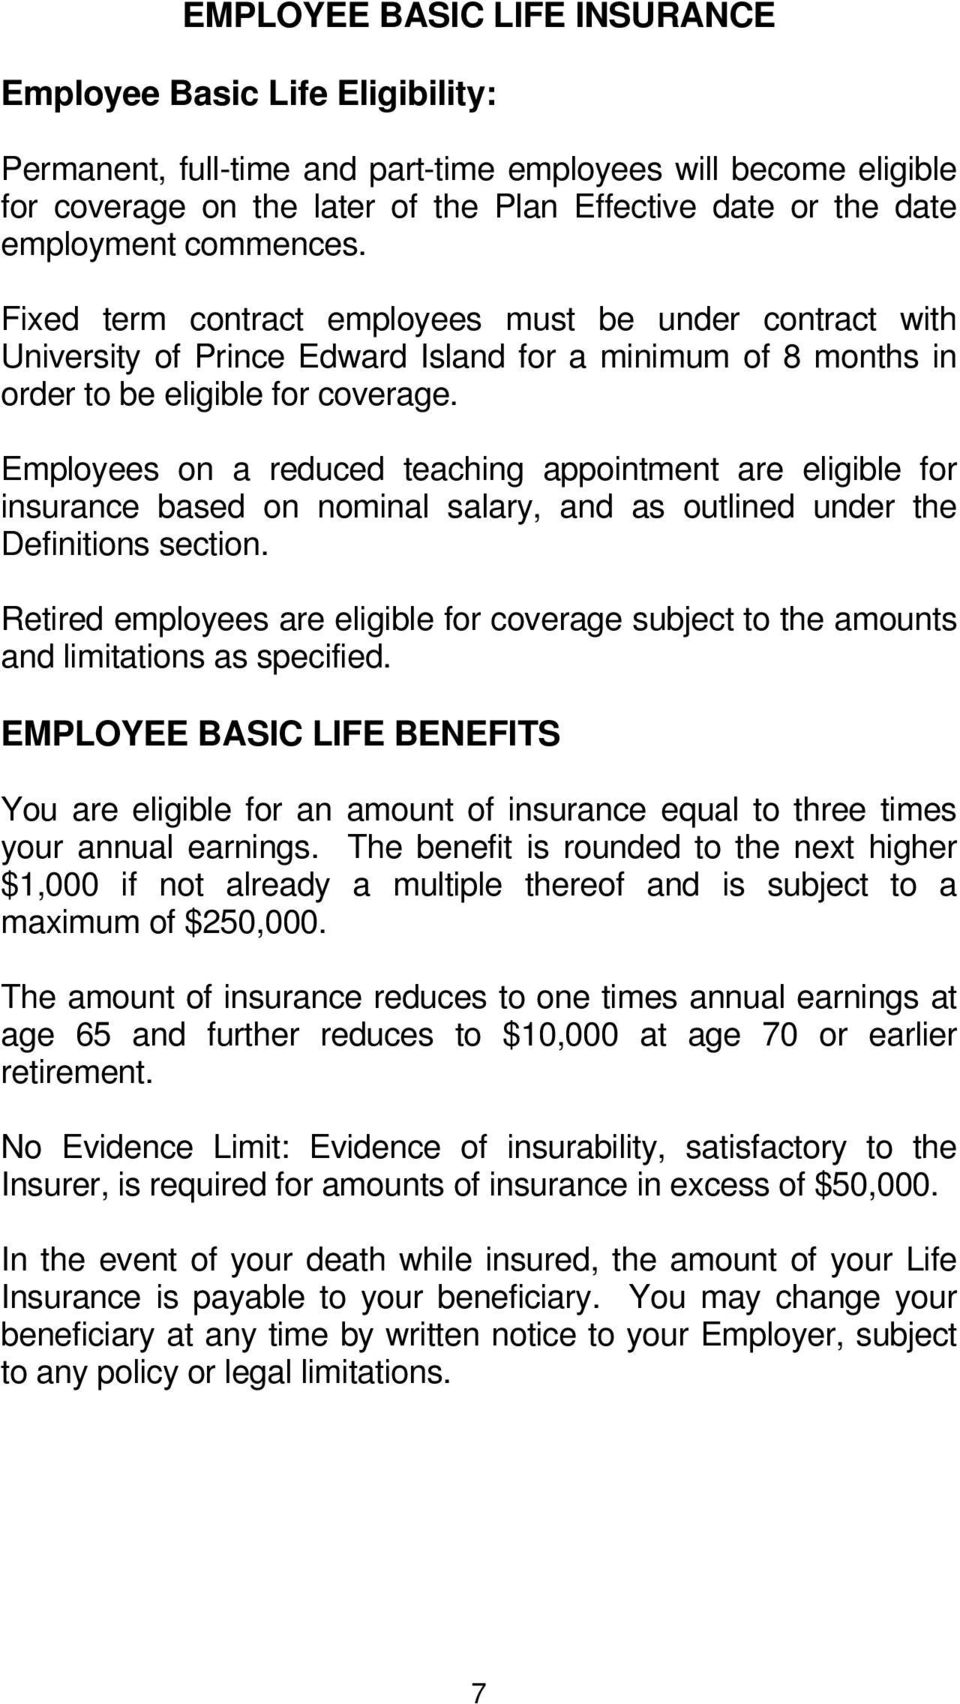 Employees on a reduced teaching appointment are eligible for insurance based on nominal salary, and as outlined under the Definitions section.